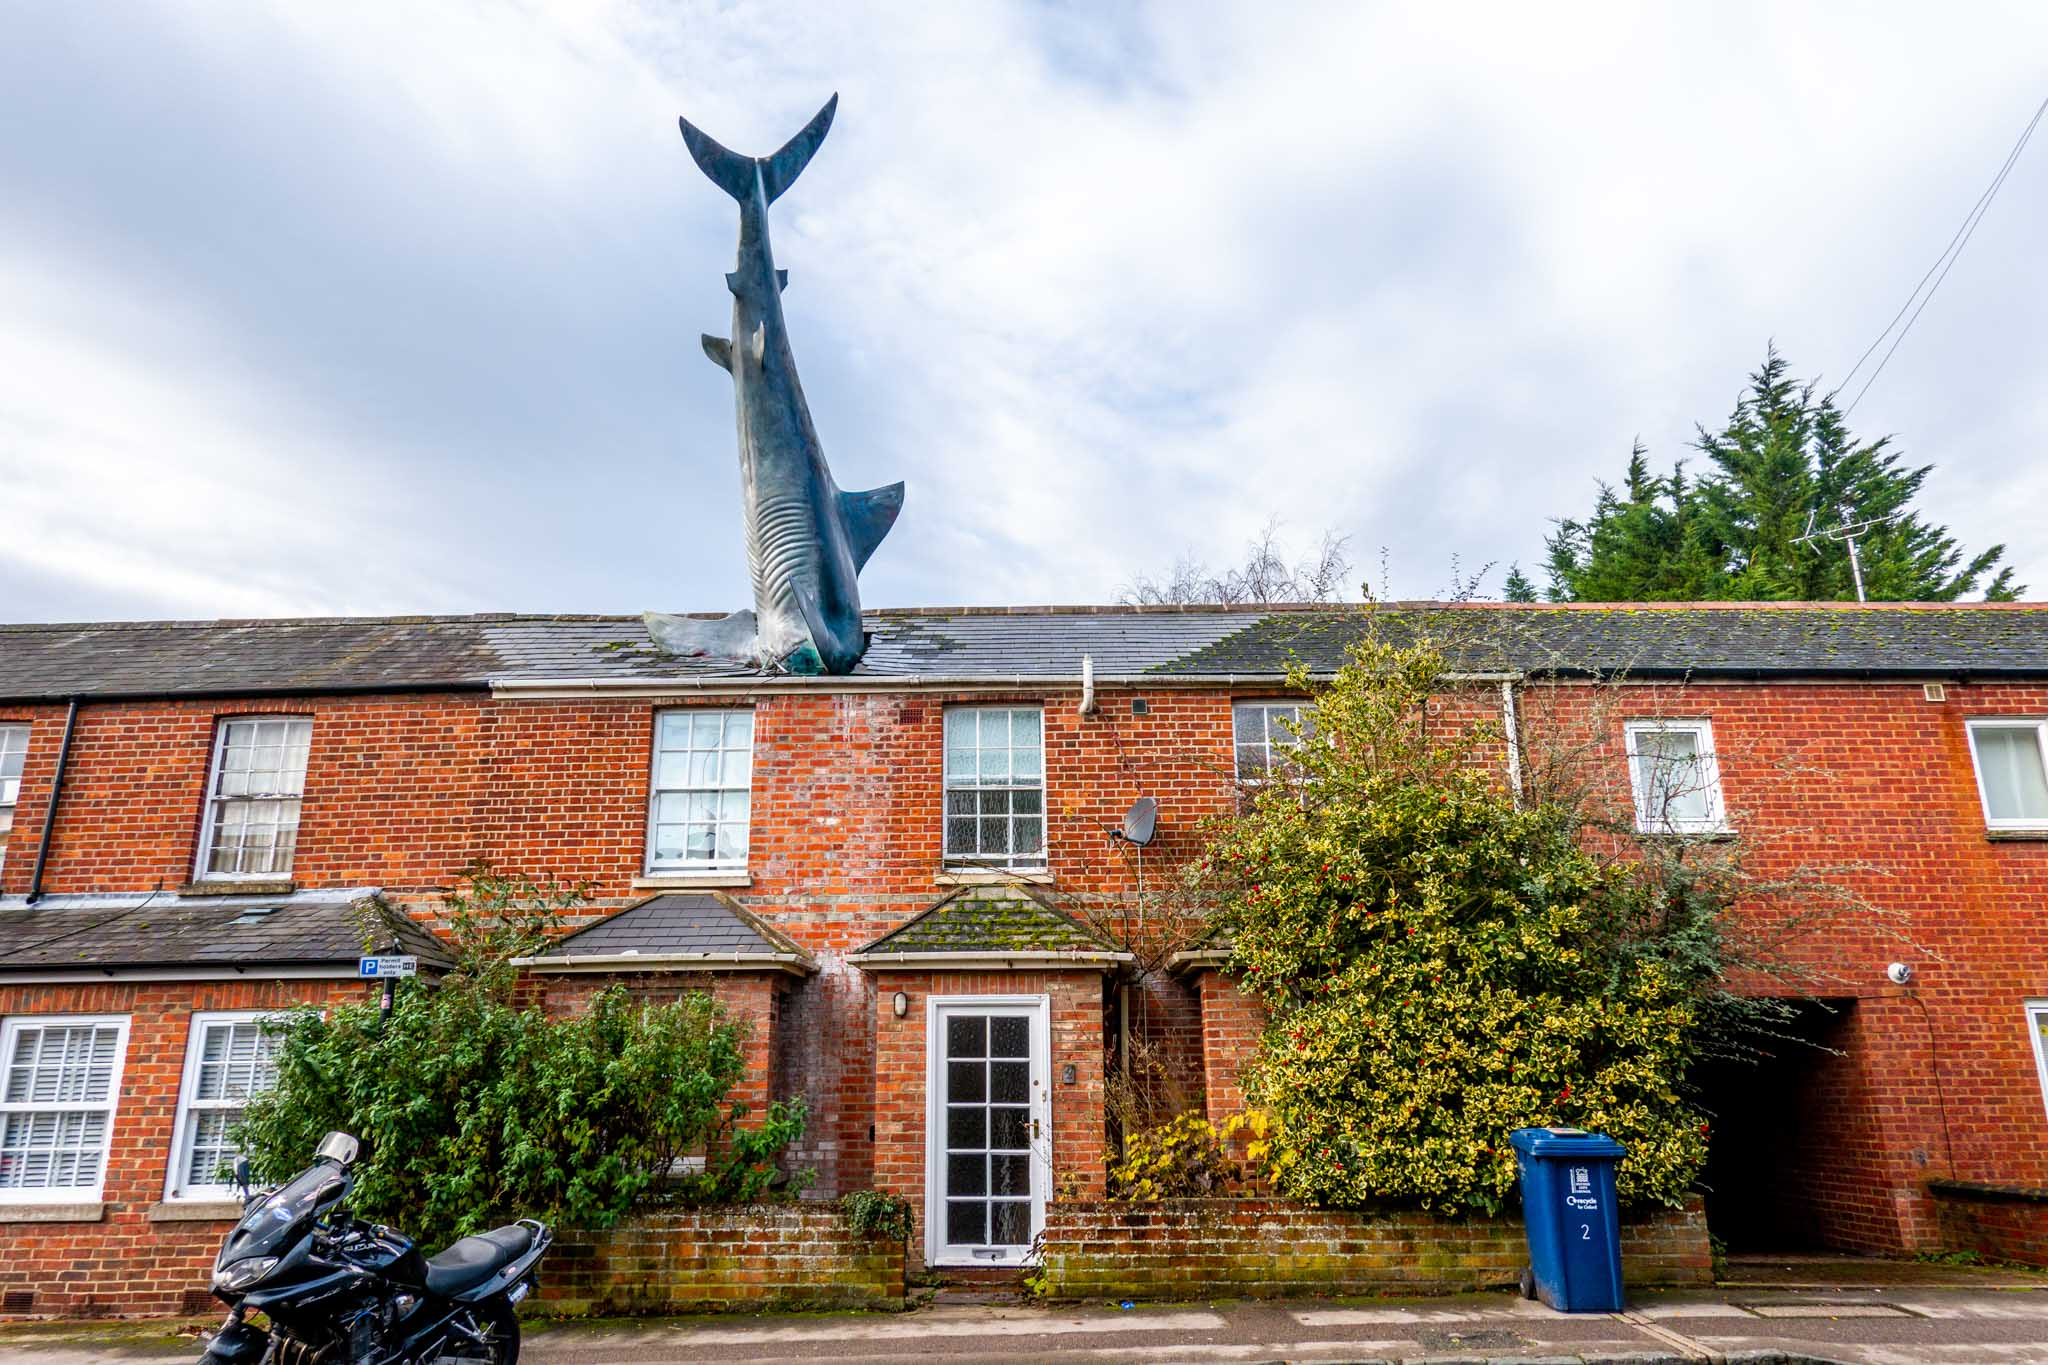 25-foot--long shark sculpture protruding from the roof of a home, the Headington Shark